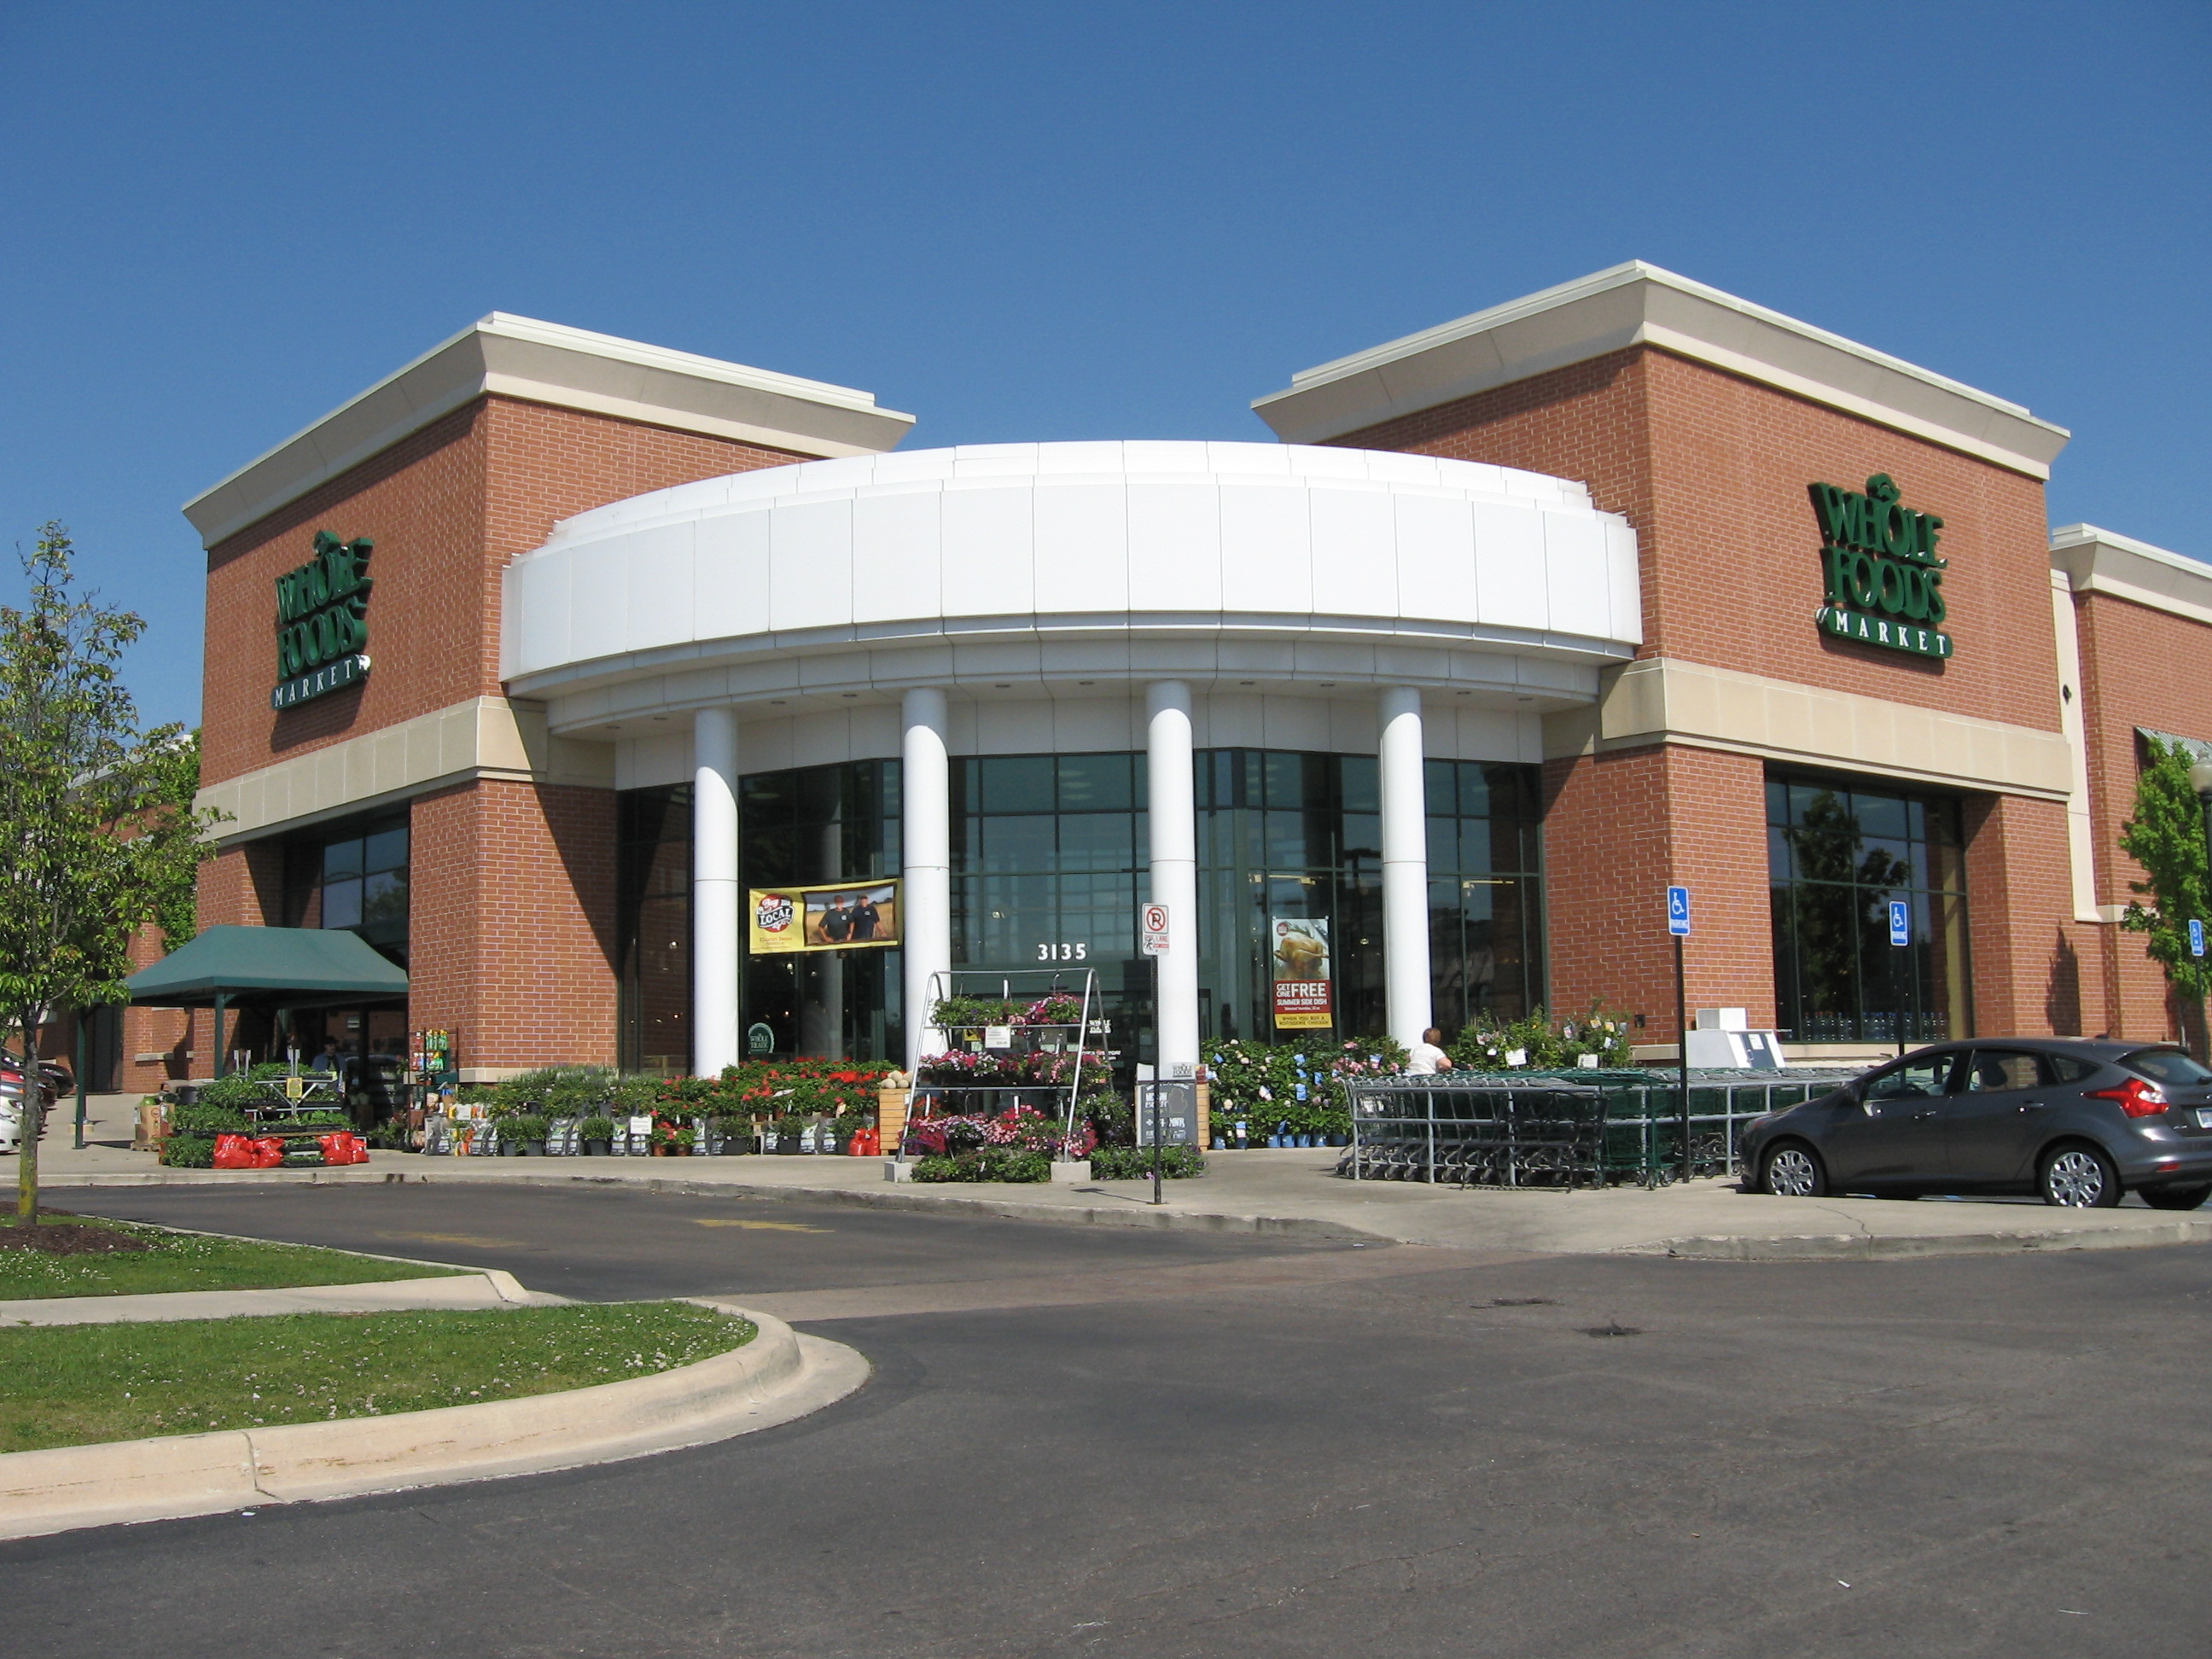 """WHOLE DUDE - WHOLE CREME: AT WHOLE FOODS MARKET, ANN ARBOR, MICHIGAN, WHOLE DUDE ANNOUNCED ON WEDNESDAY, JULY 30, 2014 HIS EPIC DISCOVERY OF THE EXPERIENCE CALLED """"WHOLE LOVE."""""""